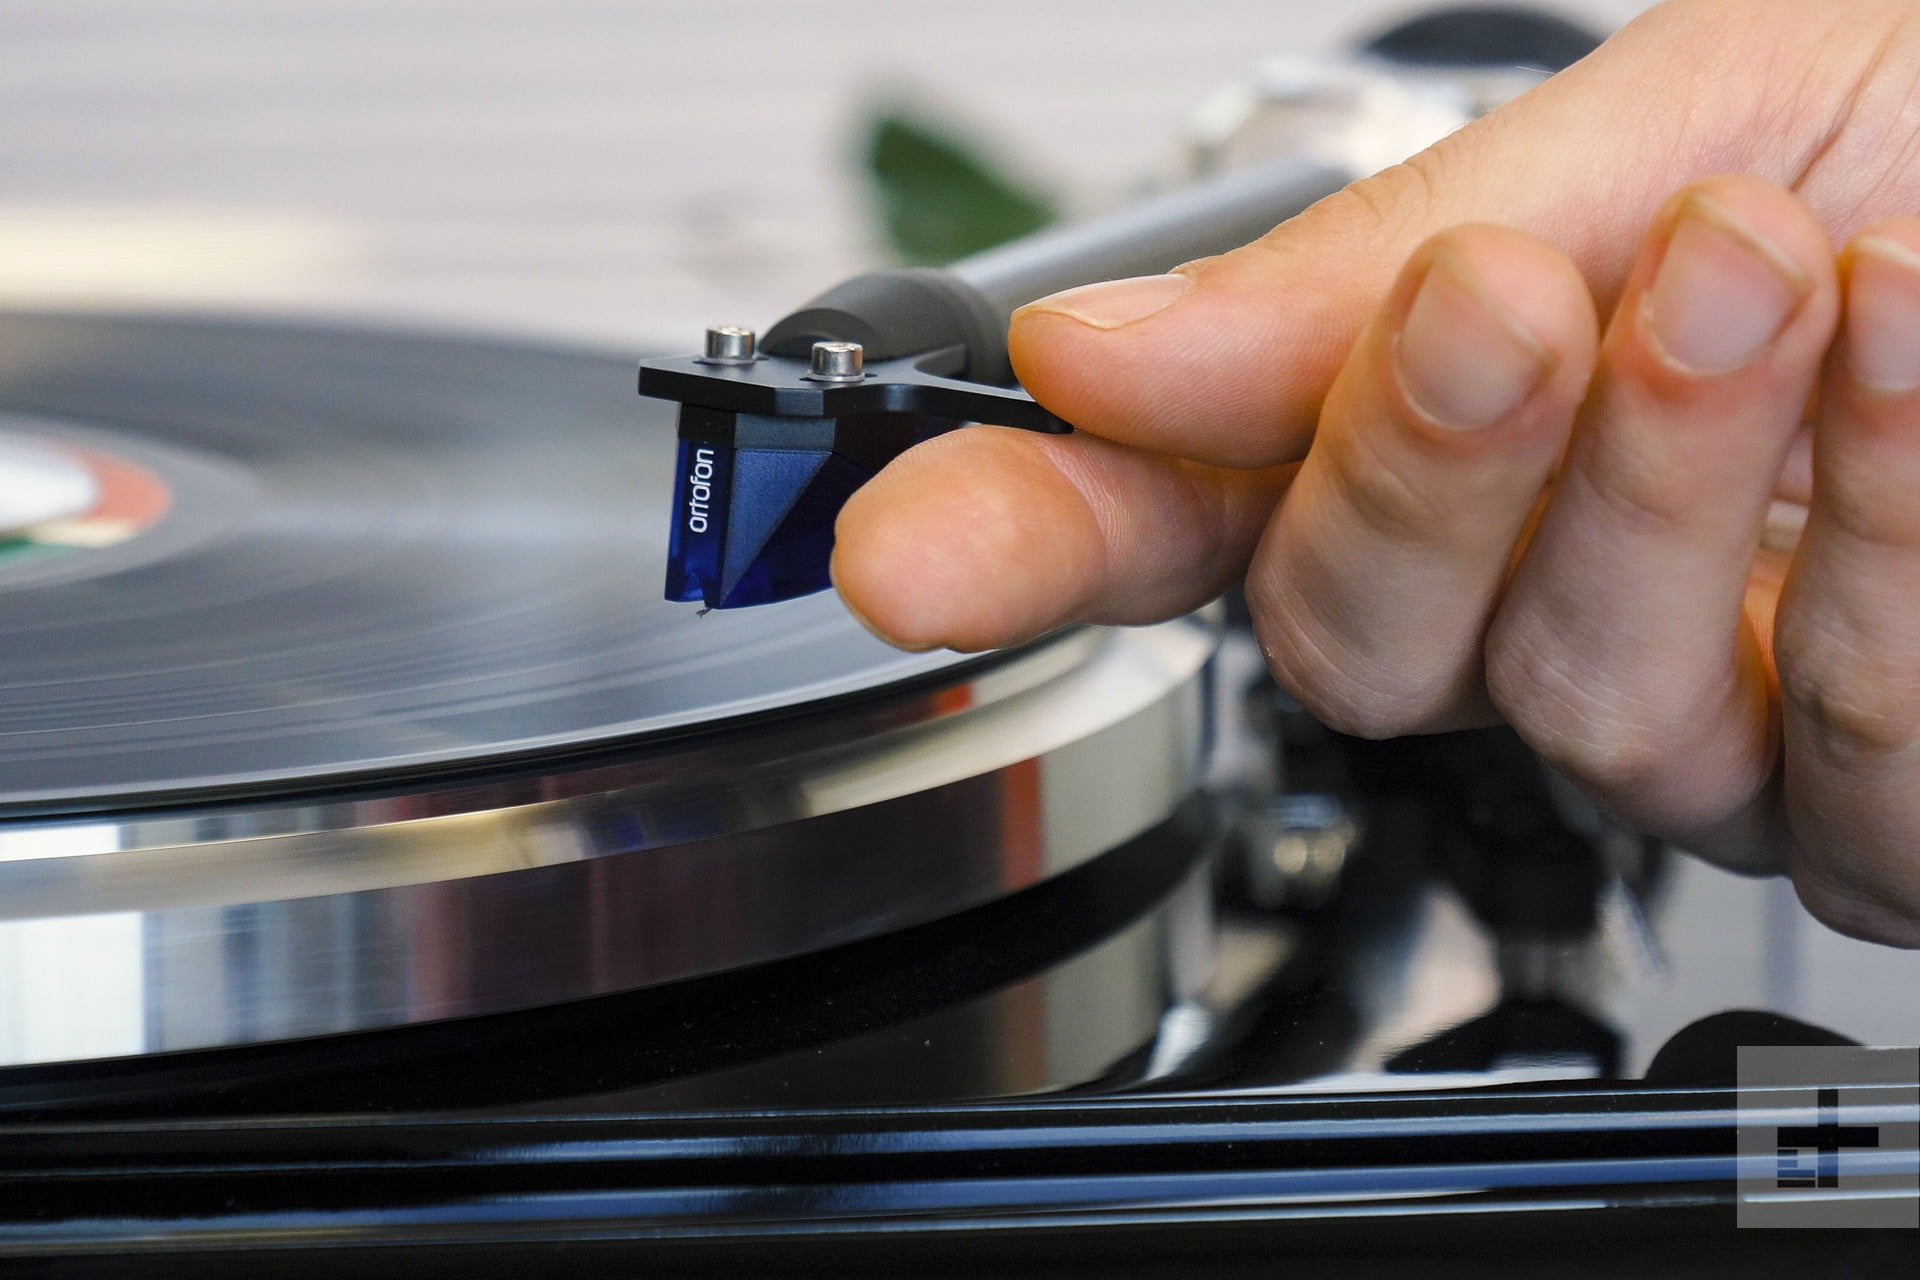 What is turntable?